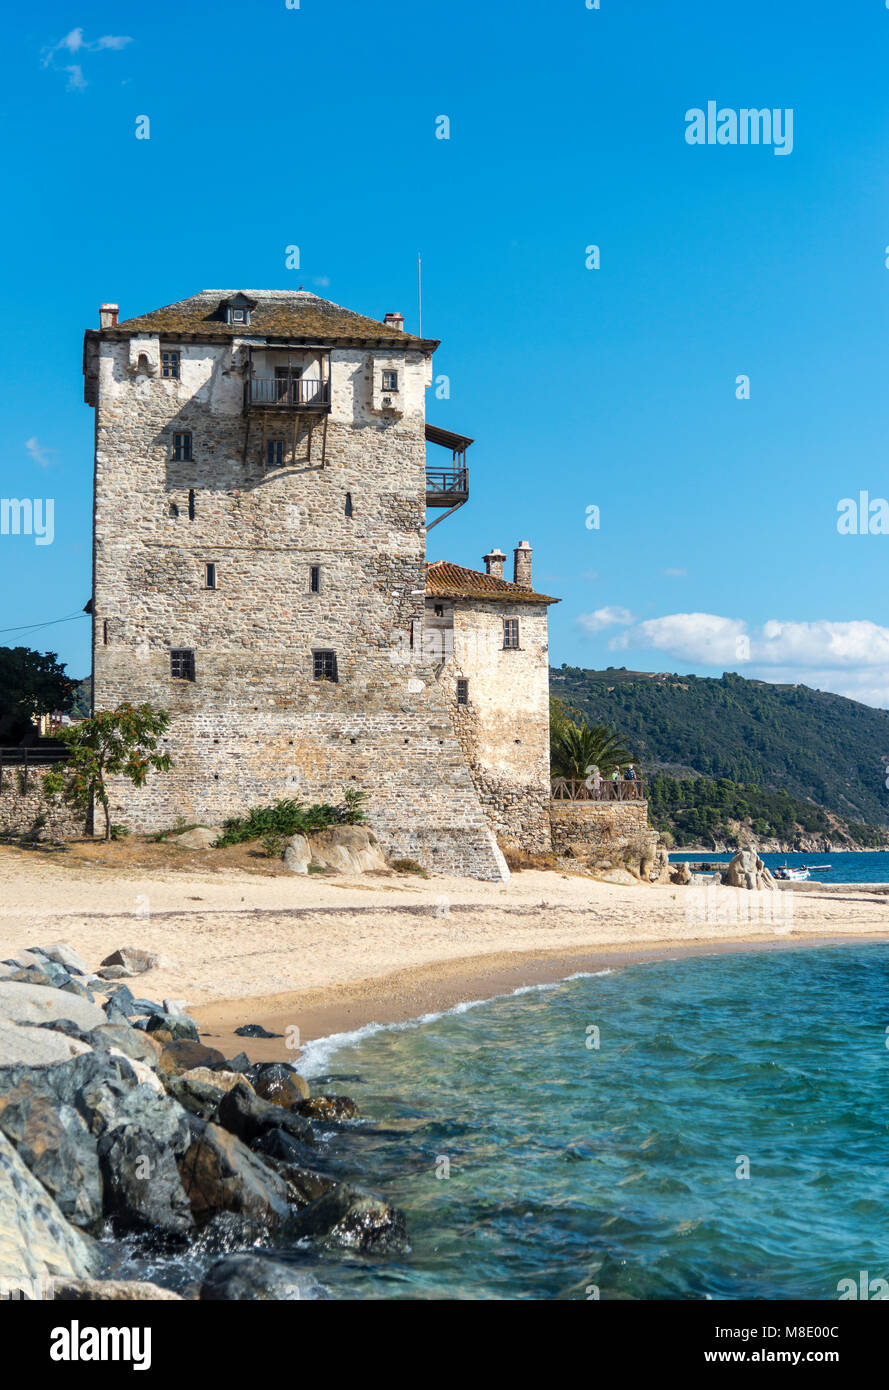 The Prosphorios tower, on the beach at Ouranoupoli with the Athos Peninsula in the background.   Chalkidiki, Macedonia, - Stock Image